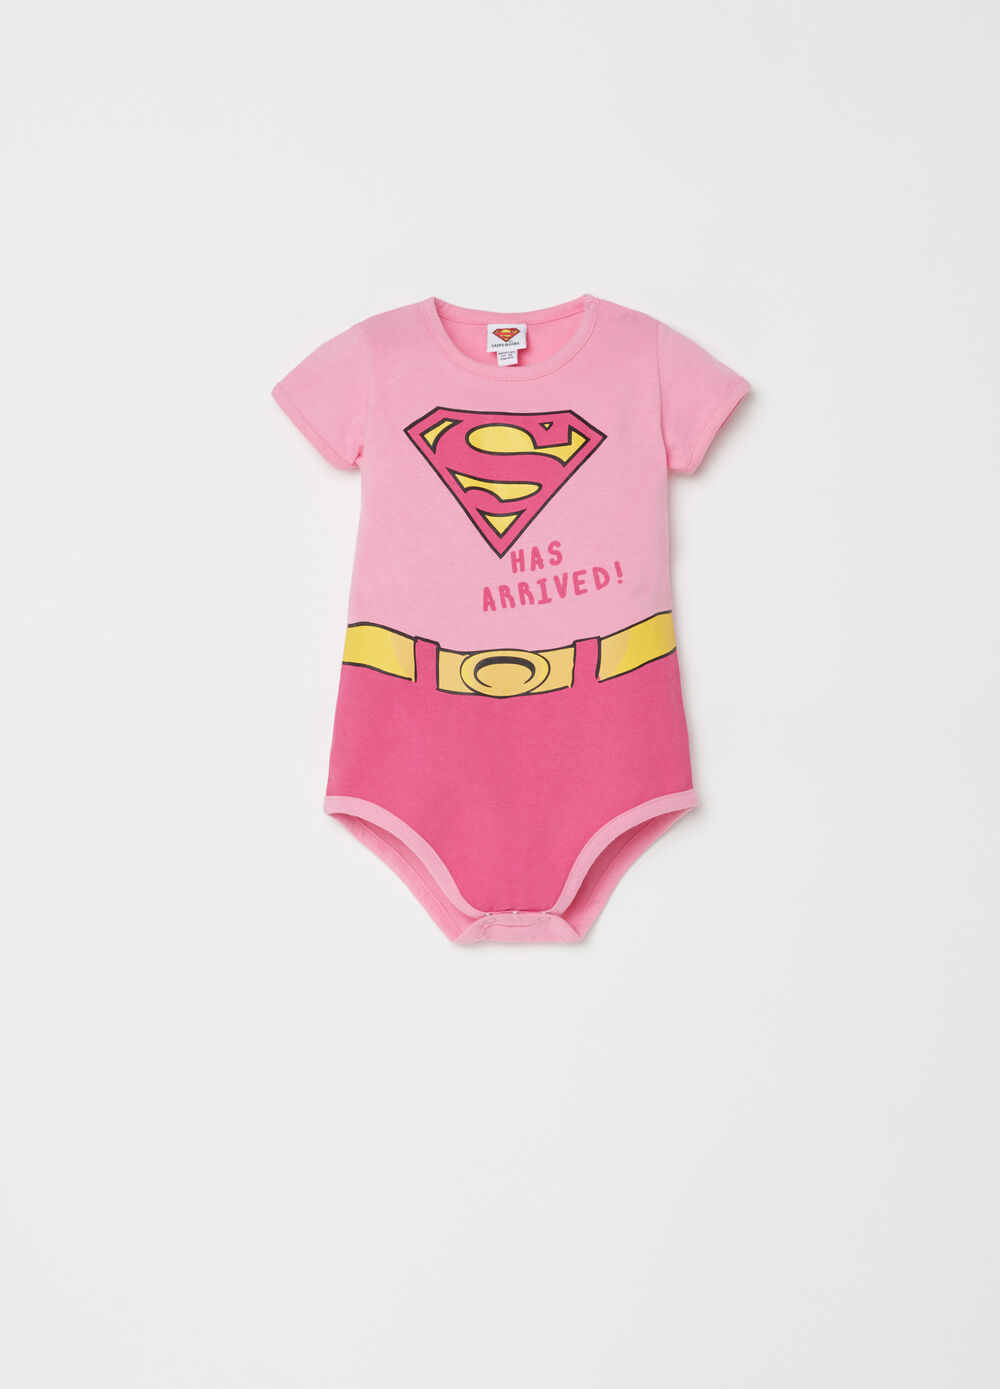 100% cotton bodysuit with Superman pattern